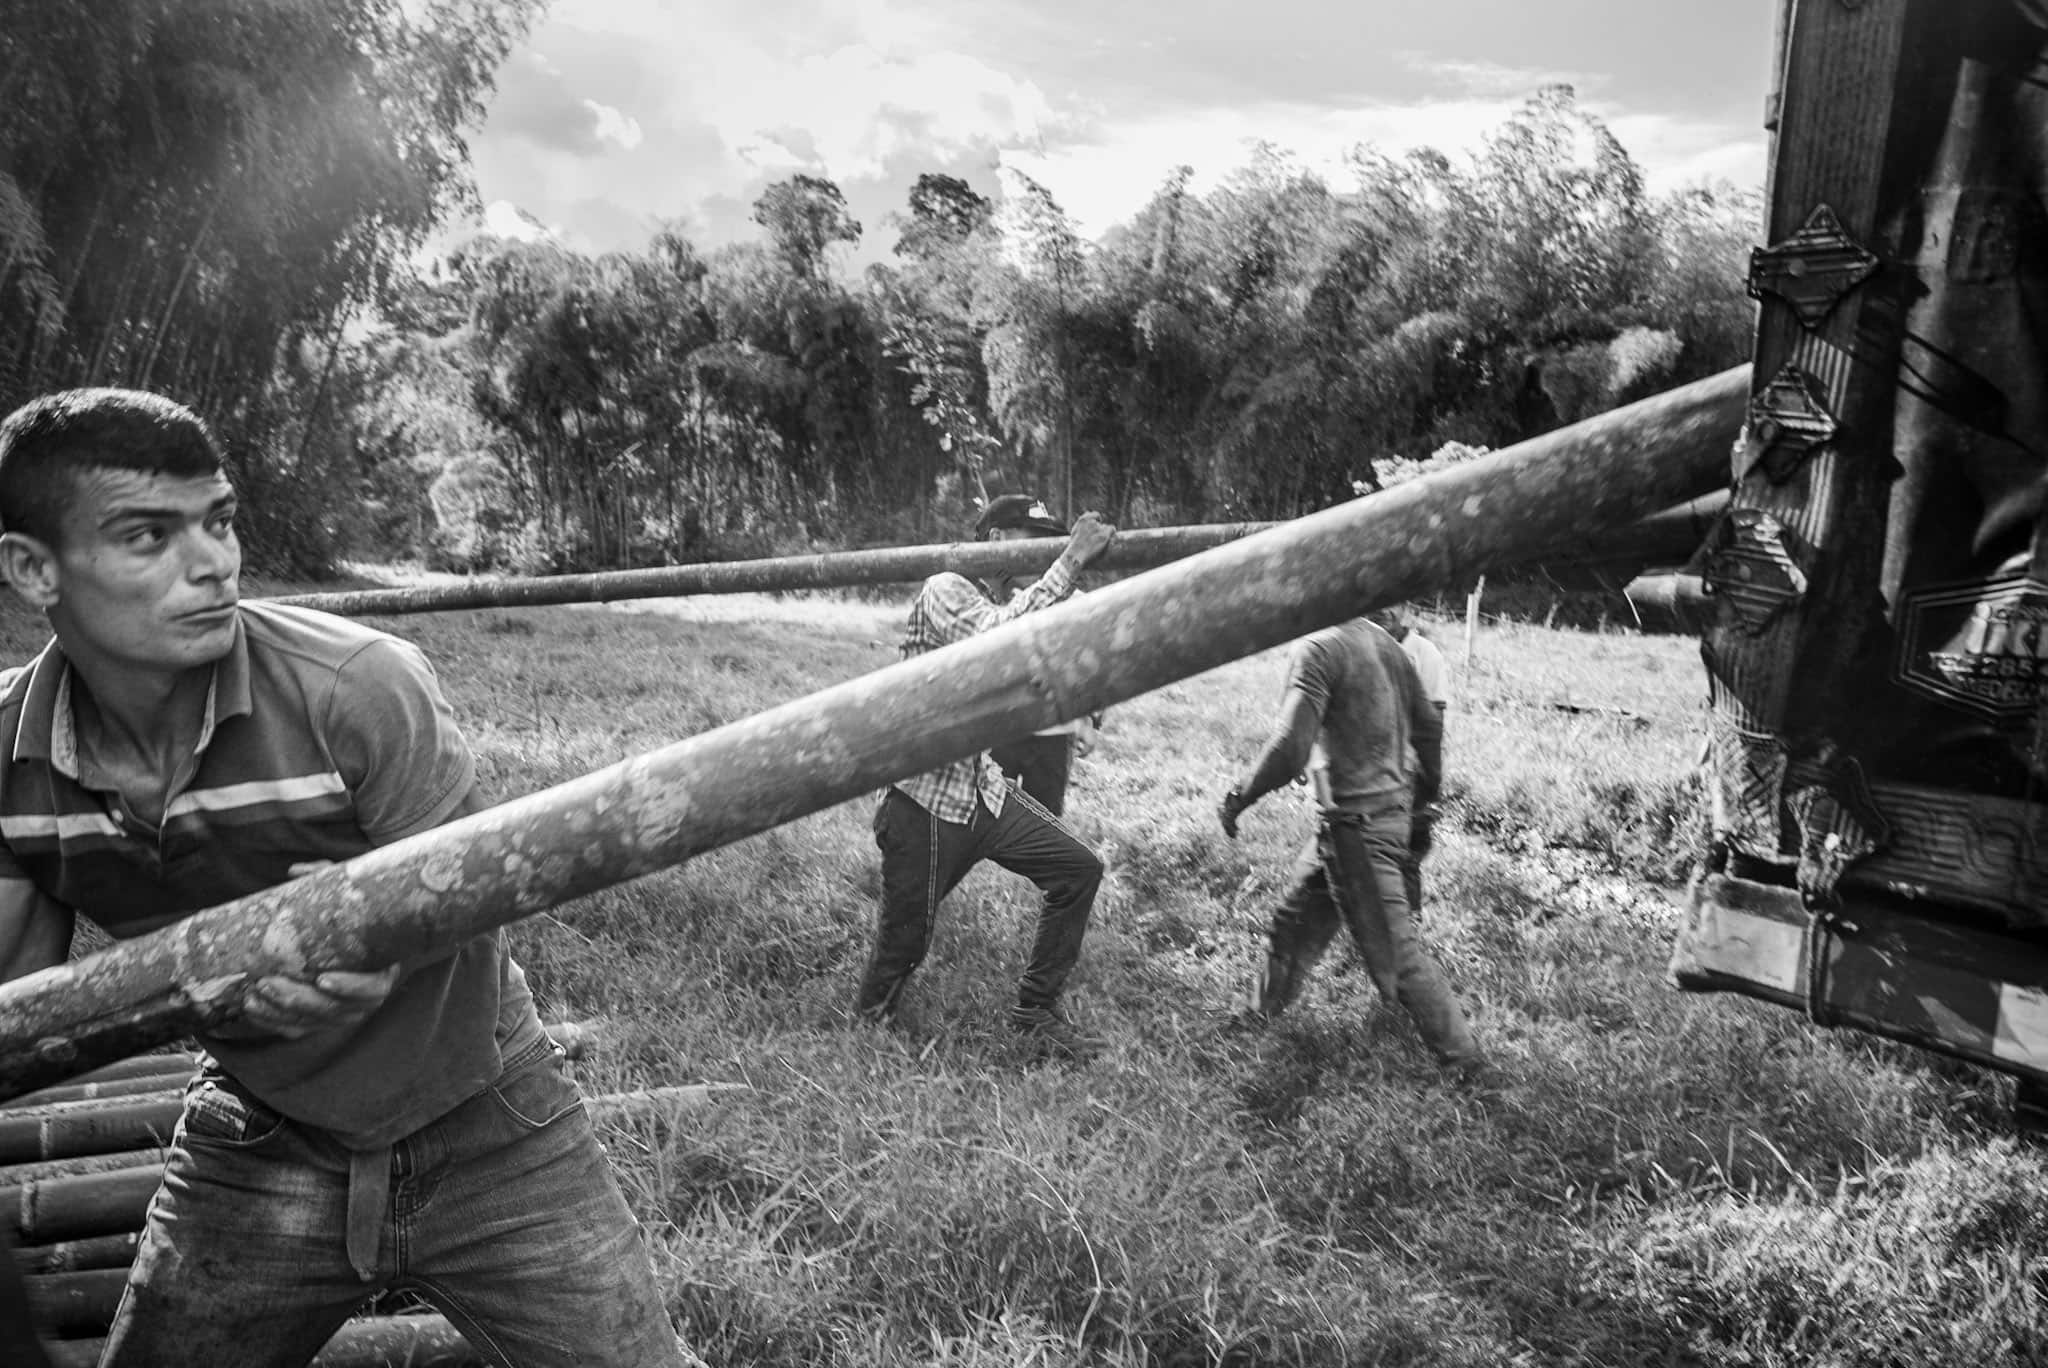 /img/pages/bamboo-textile/colombia/Bamboo_harvesting_in_Colombia.jpg